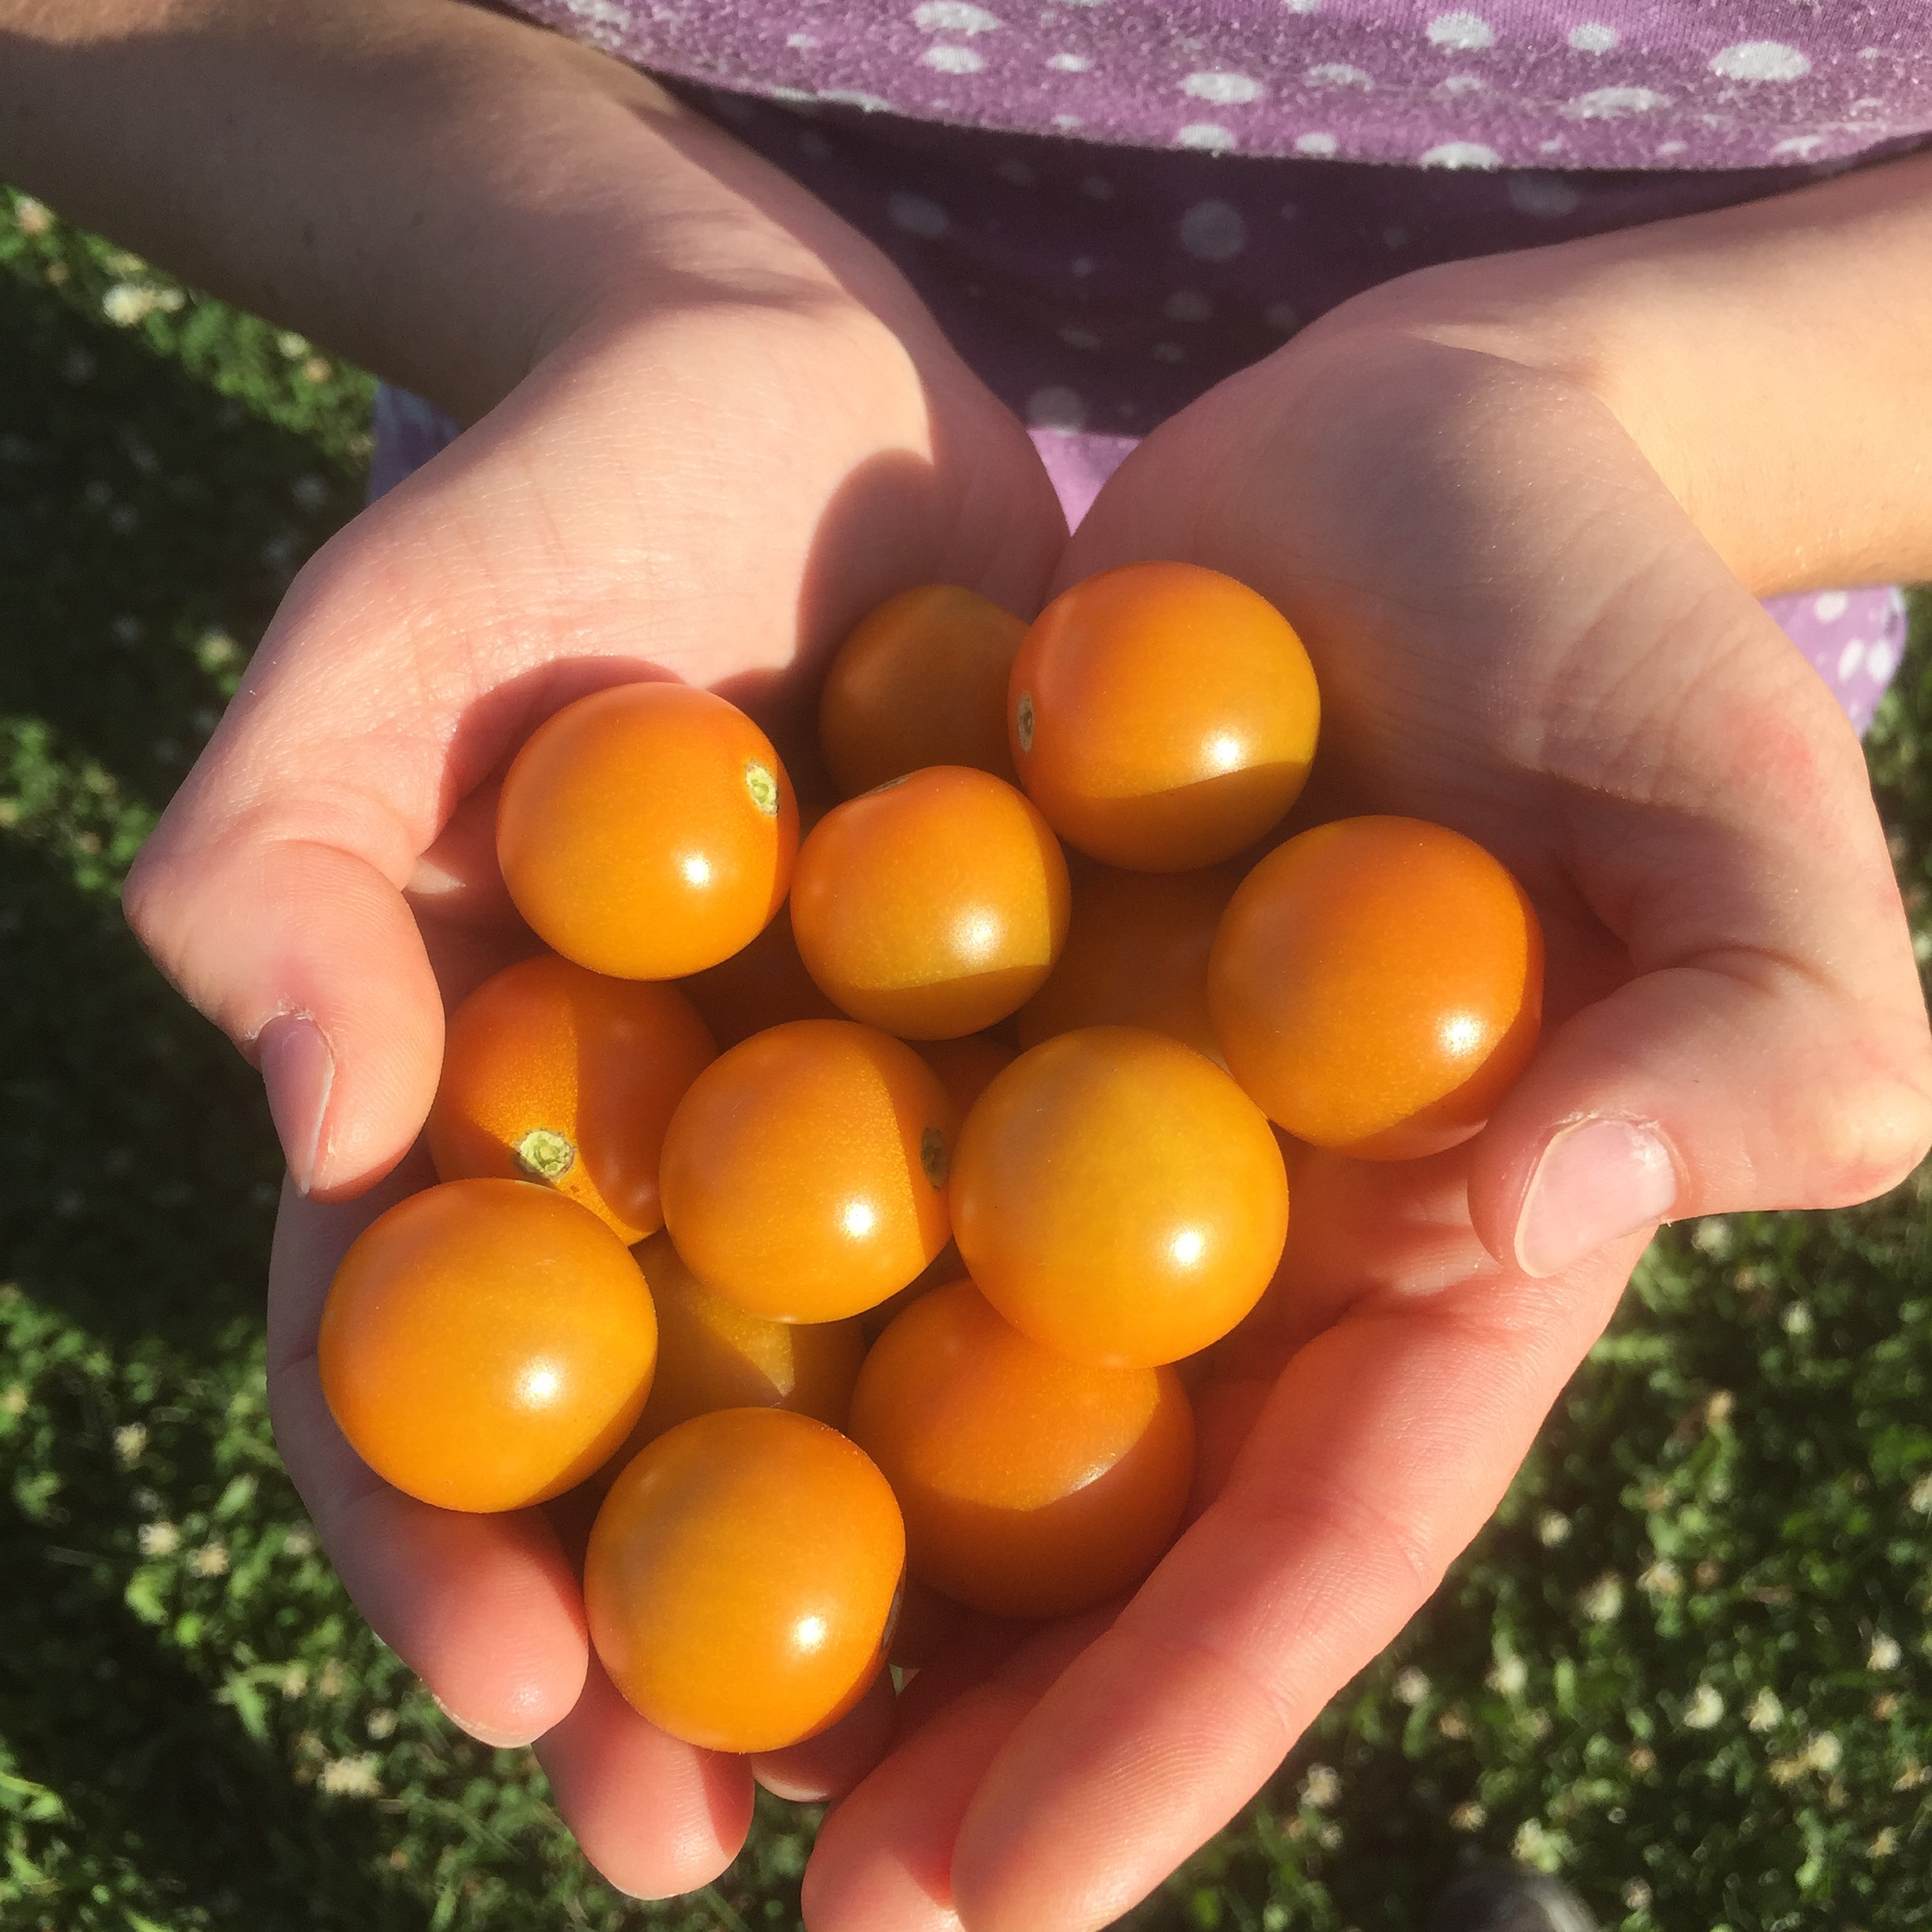 Sun Gold cherry tomatoes are nearly unbeatable. This was the first handful picked this season.